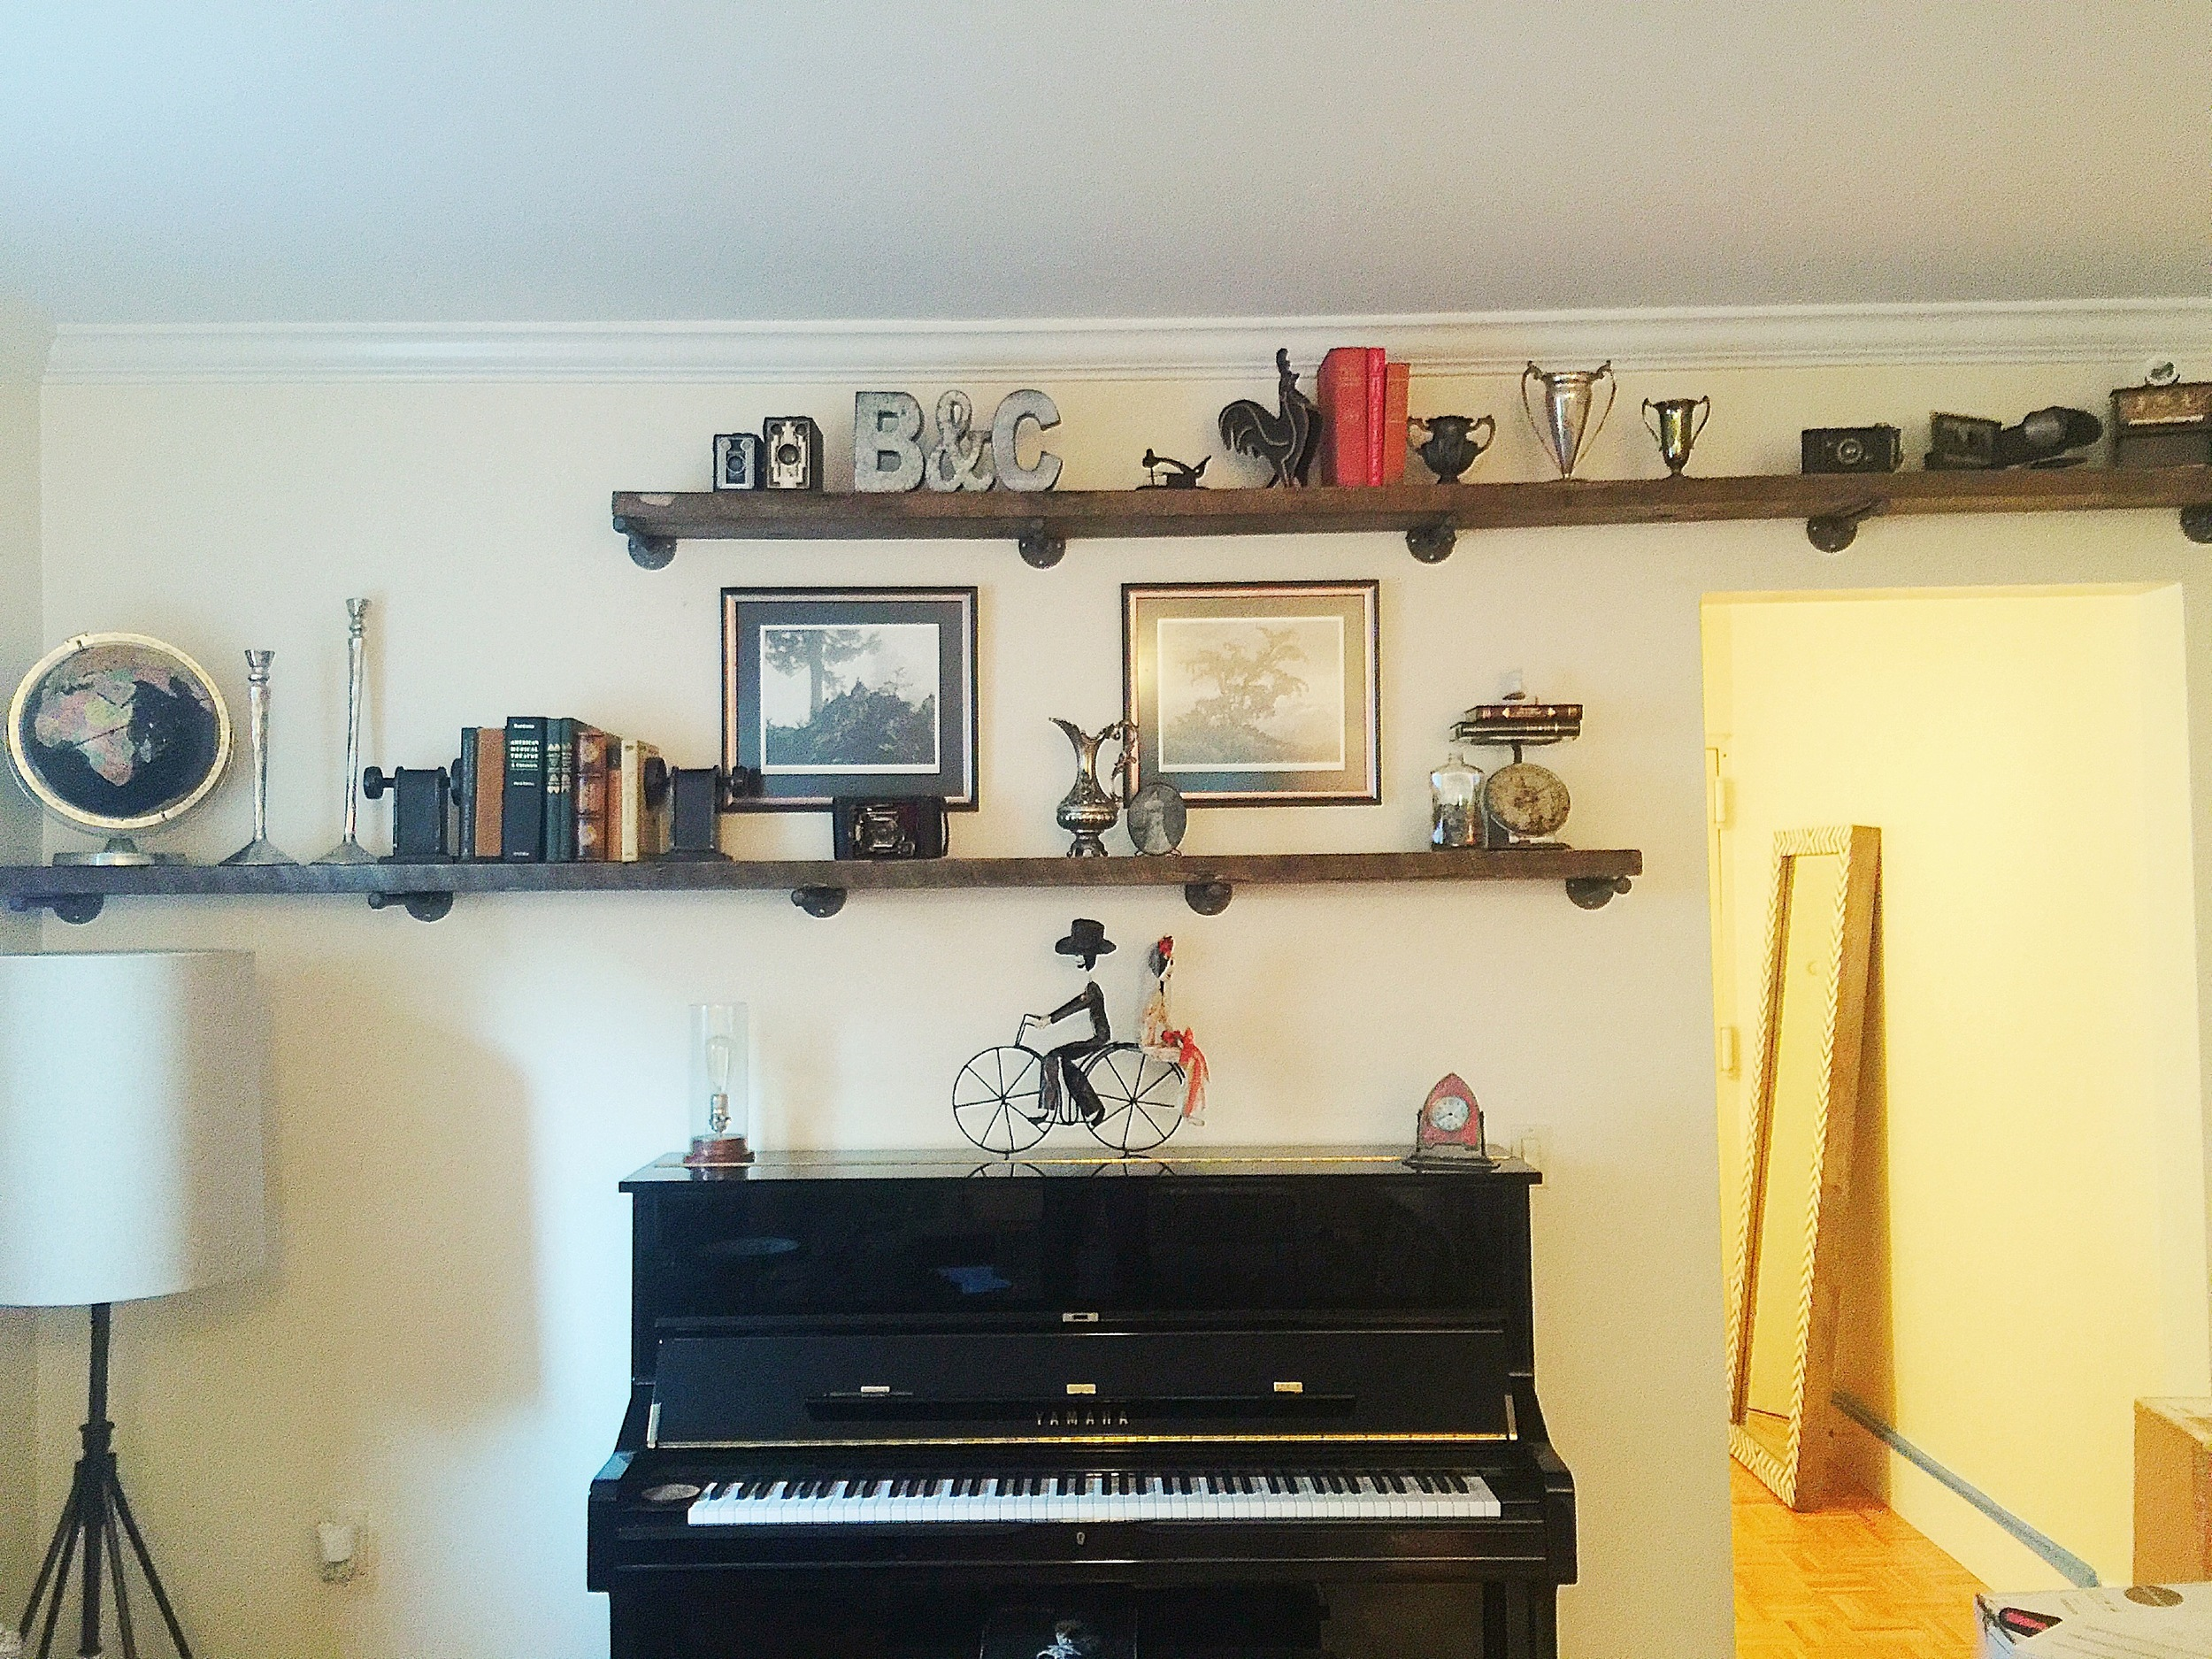 Space above the floor lamp and doorway was used to bring the focus in this area up above the piano for a cool eclectic look.